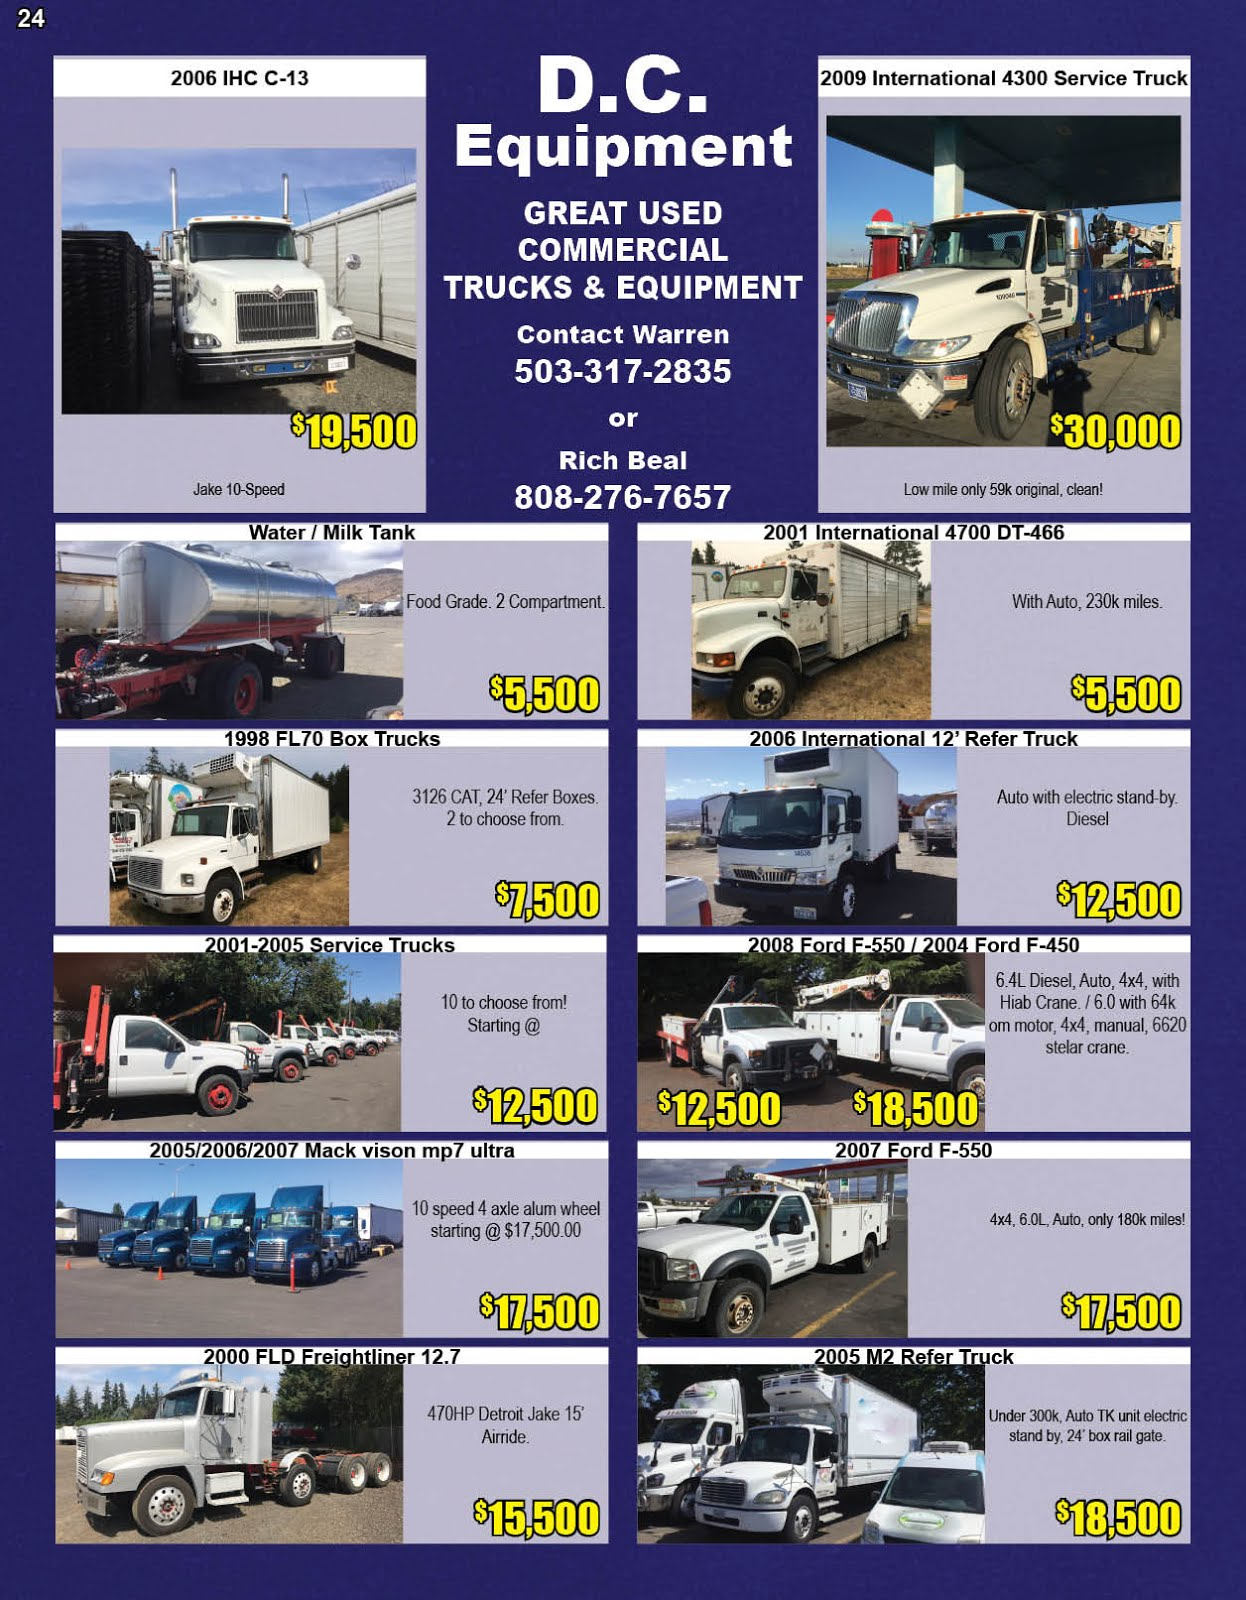 D.C. Equipment Great Used Commercial Trucks and Equipment!!